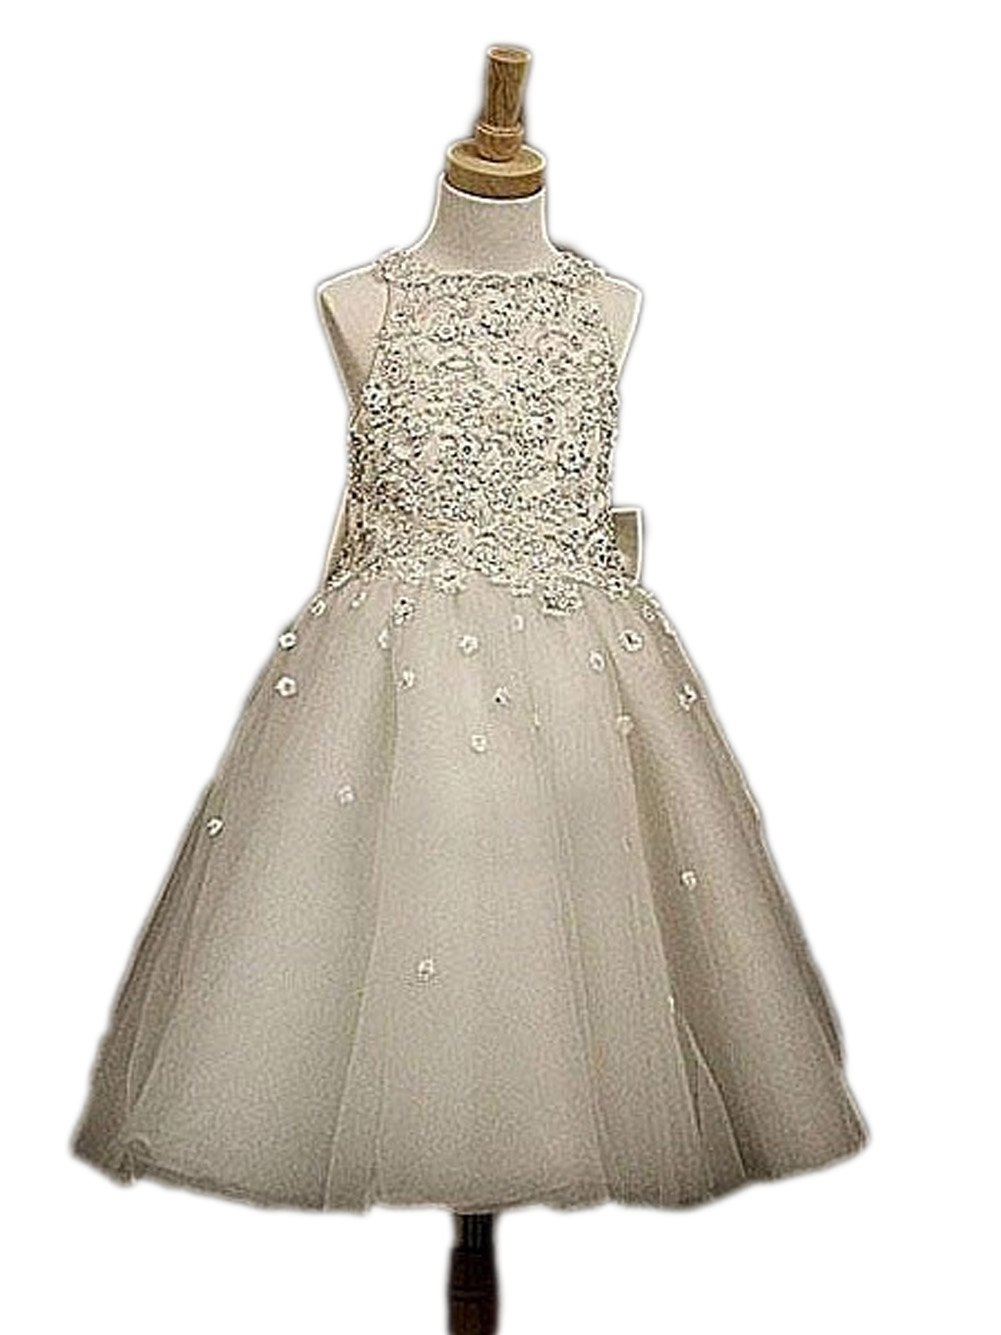 Love Dress Tulle Applique Wedding Girls Dress Christmas Present Us 6